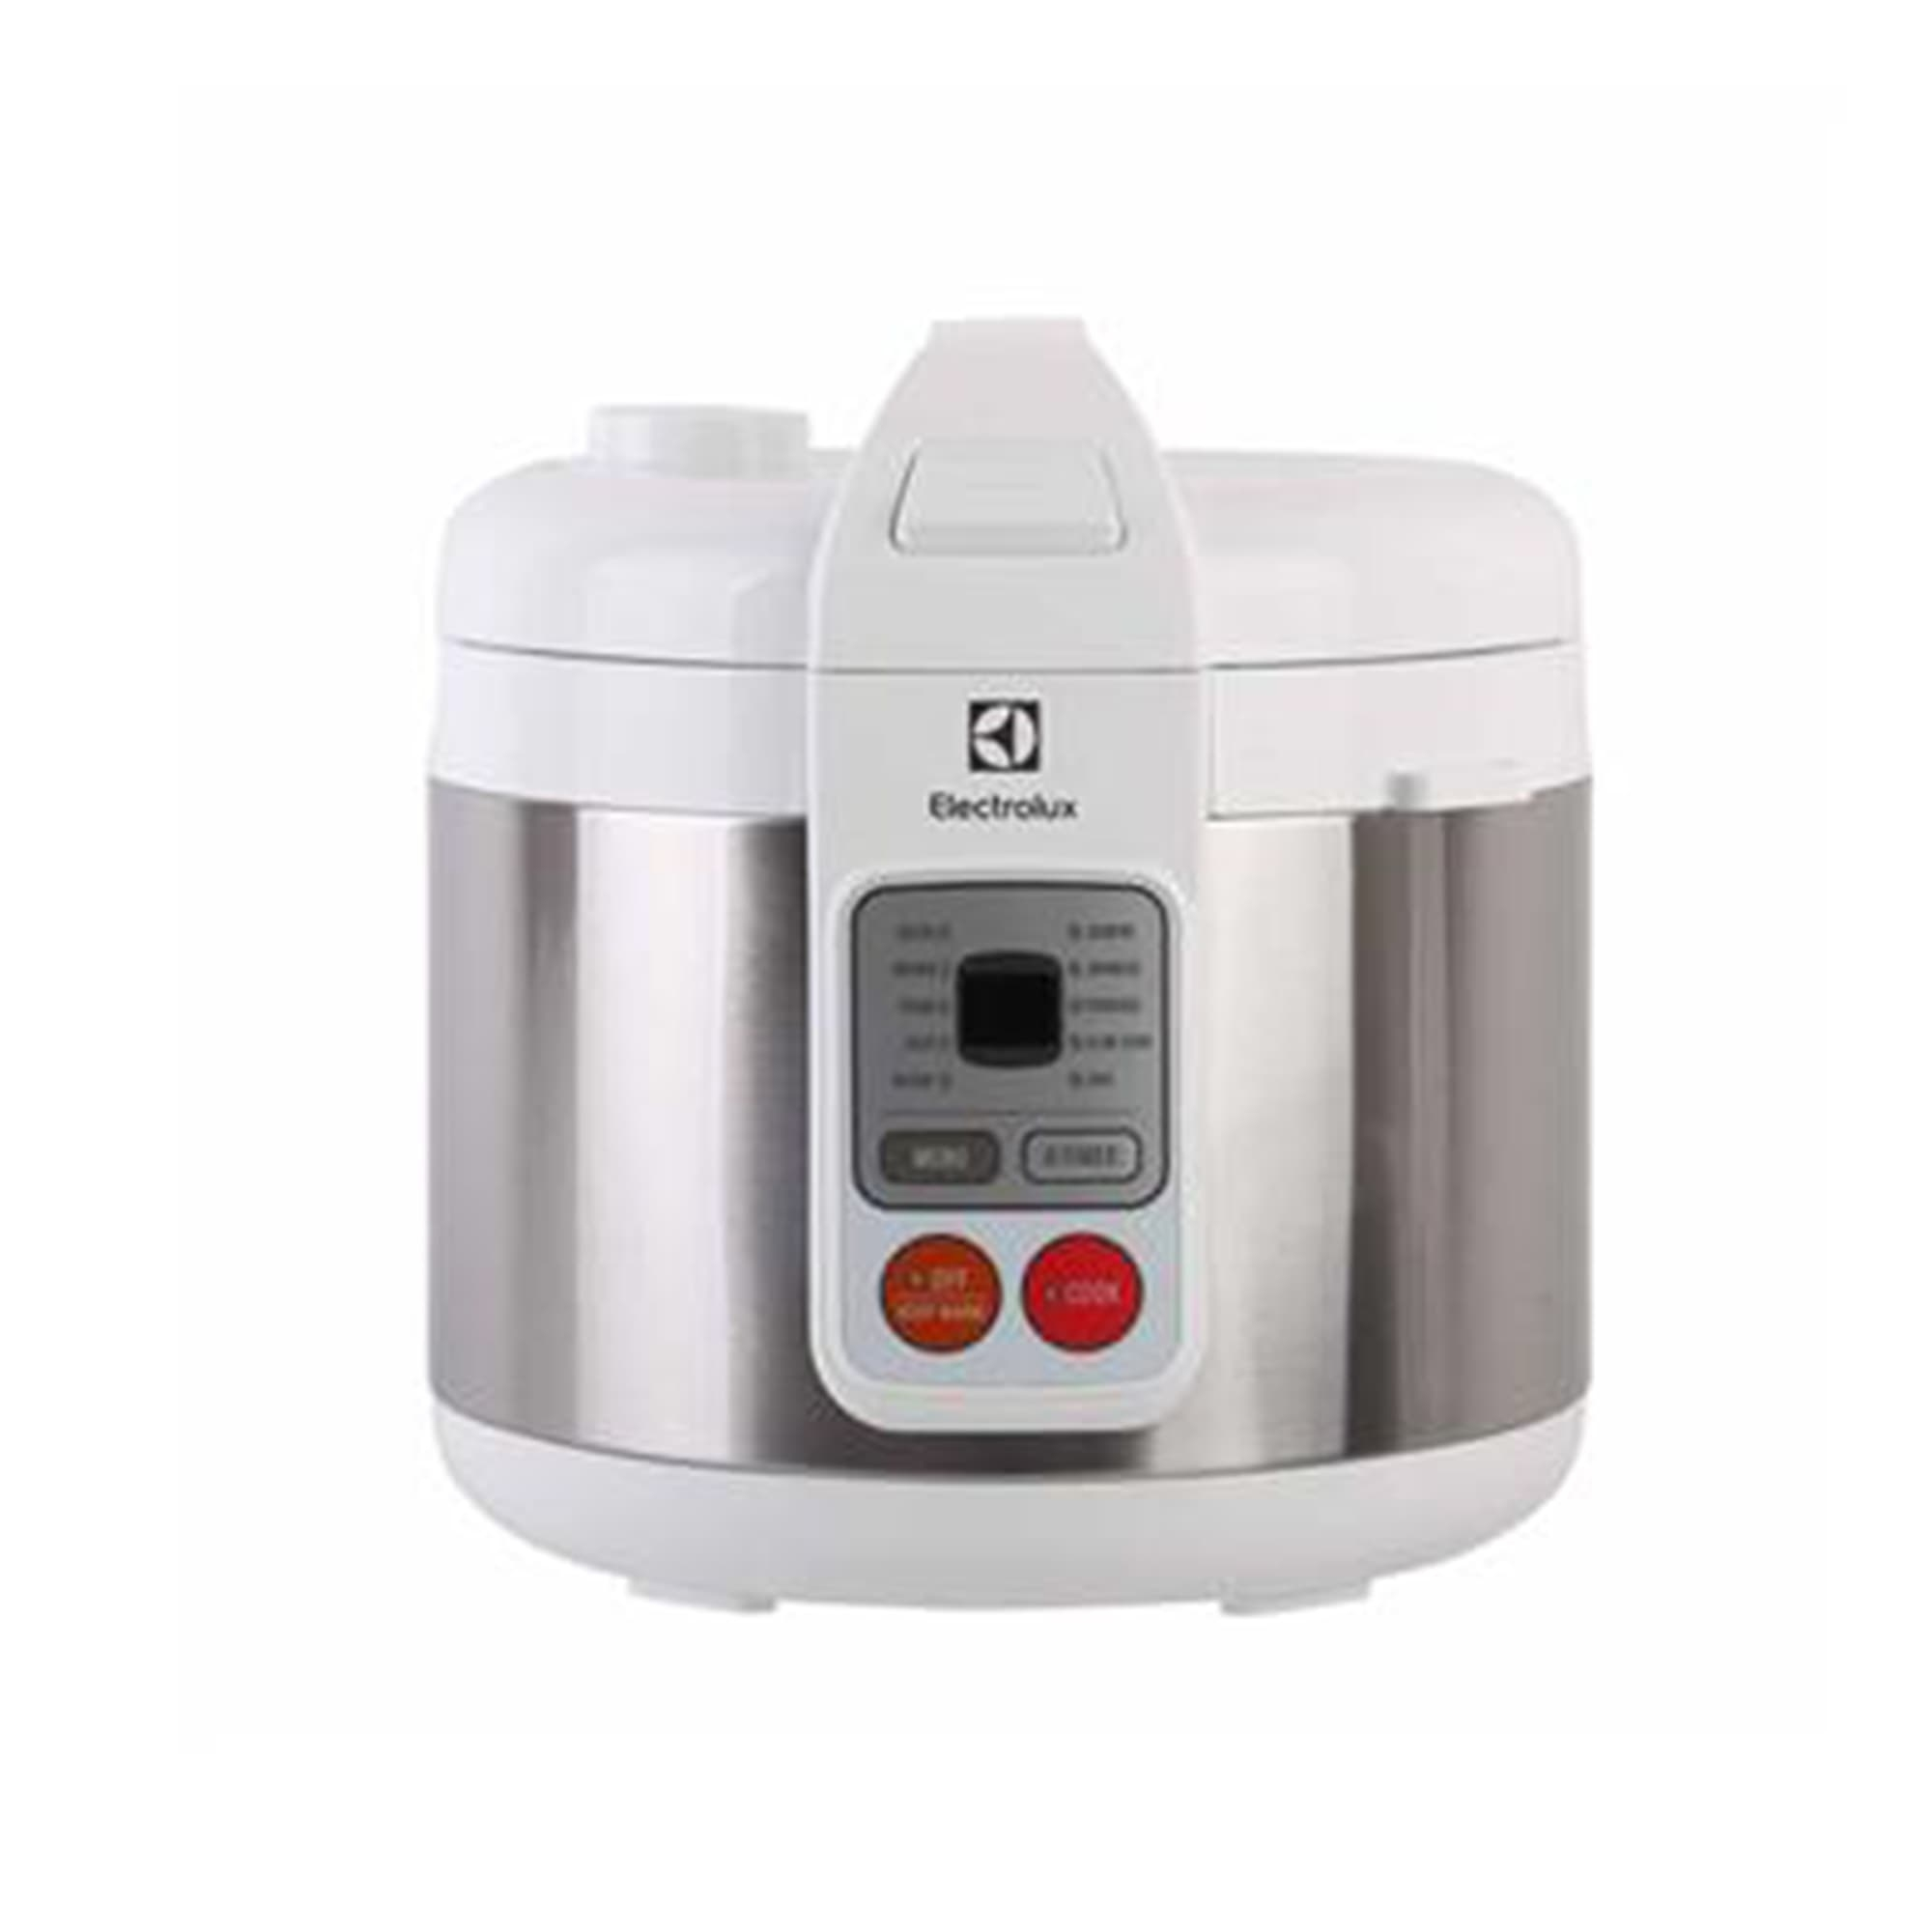 electrolux smart rice cooker erc3505 end 5 2 2020 4 41 pm rh lelong com my Wolfgang Puck Rice Cooker Wolfgang Puck Bistro Rice Cooker